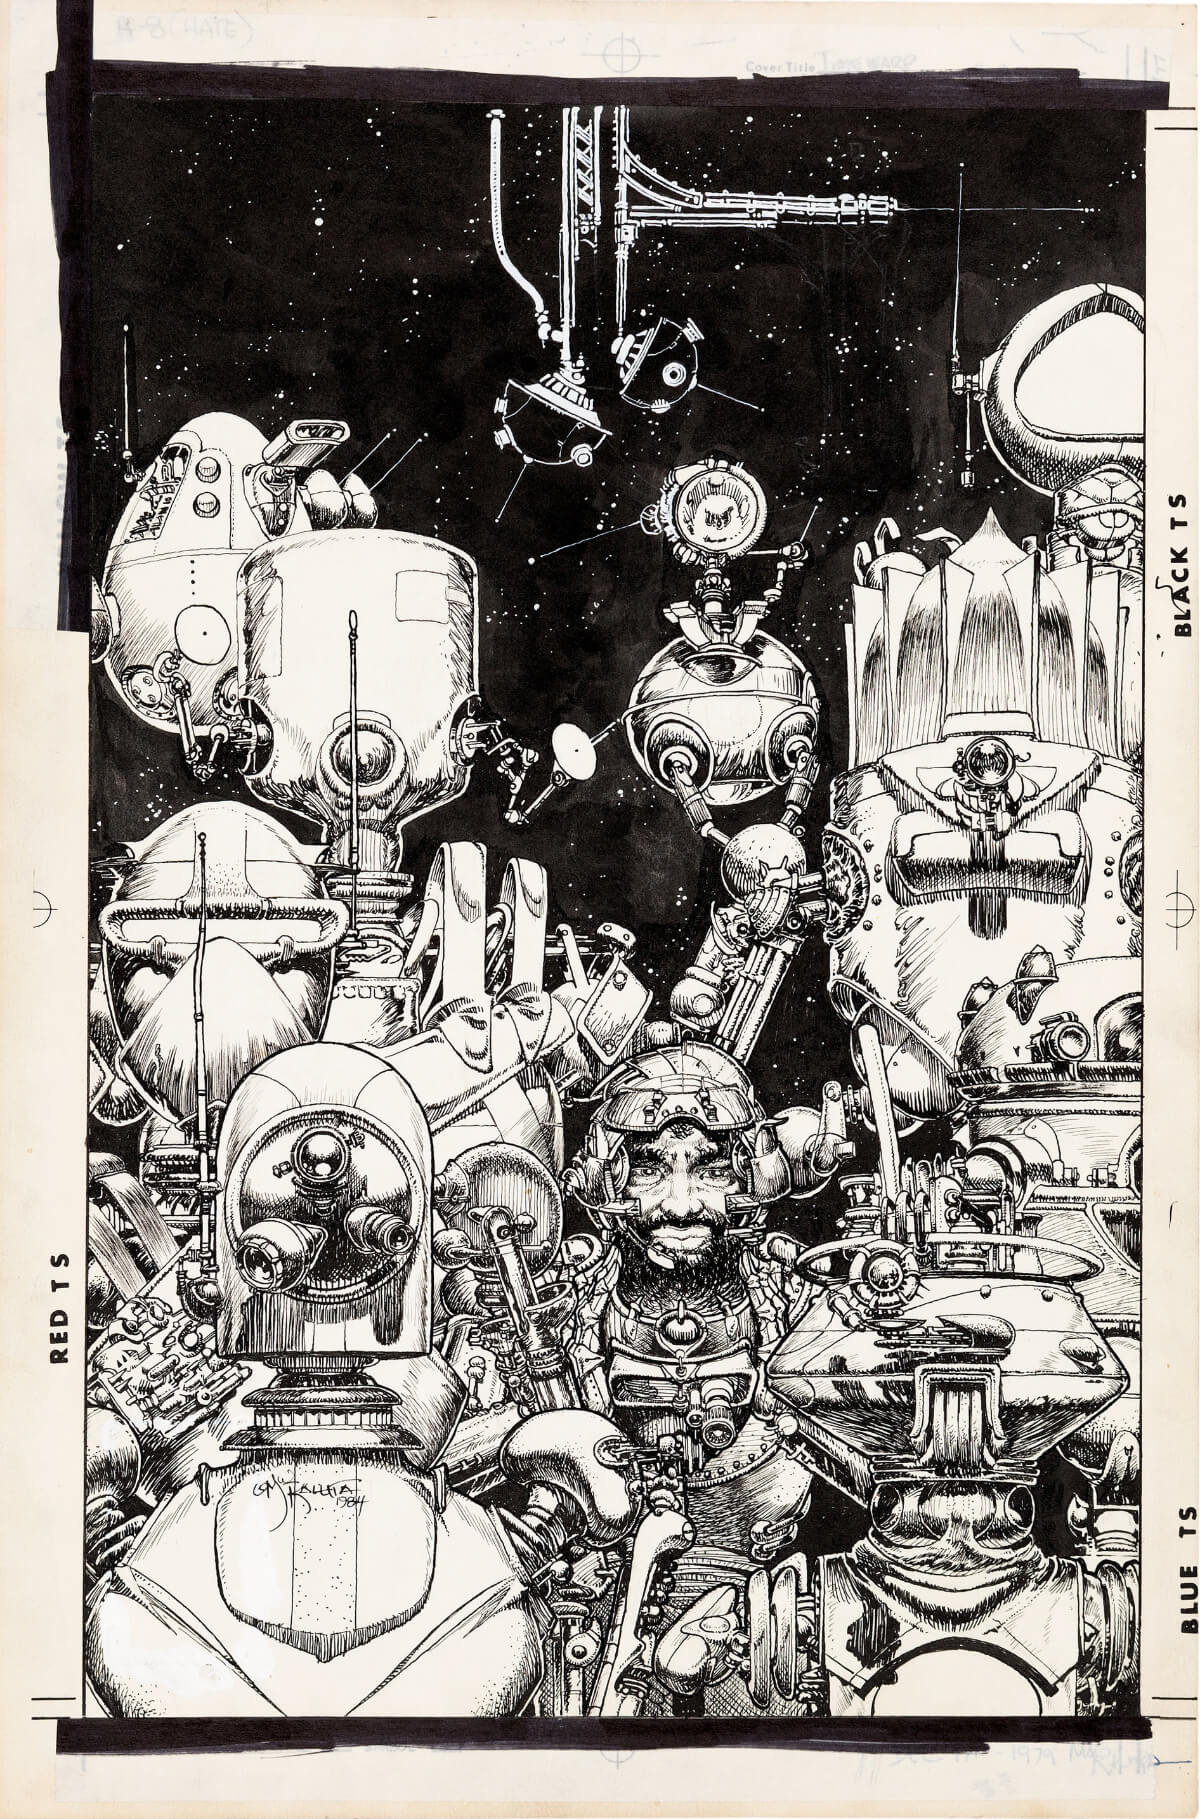 Illustration by Michael Wm Kaluta